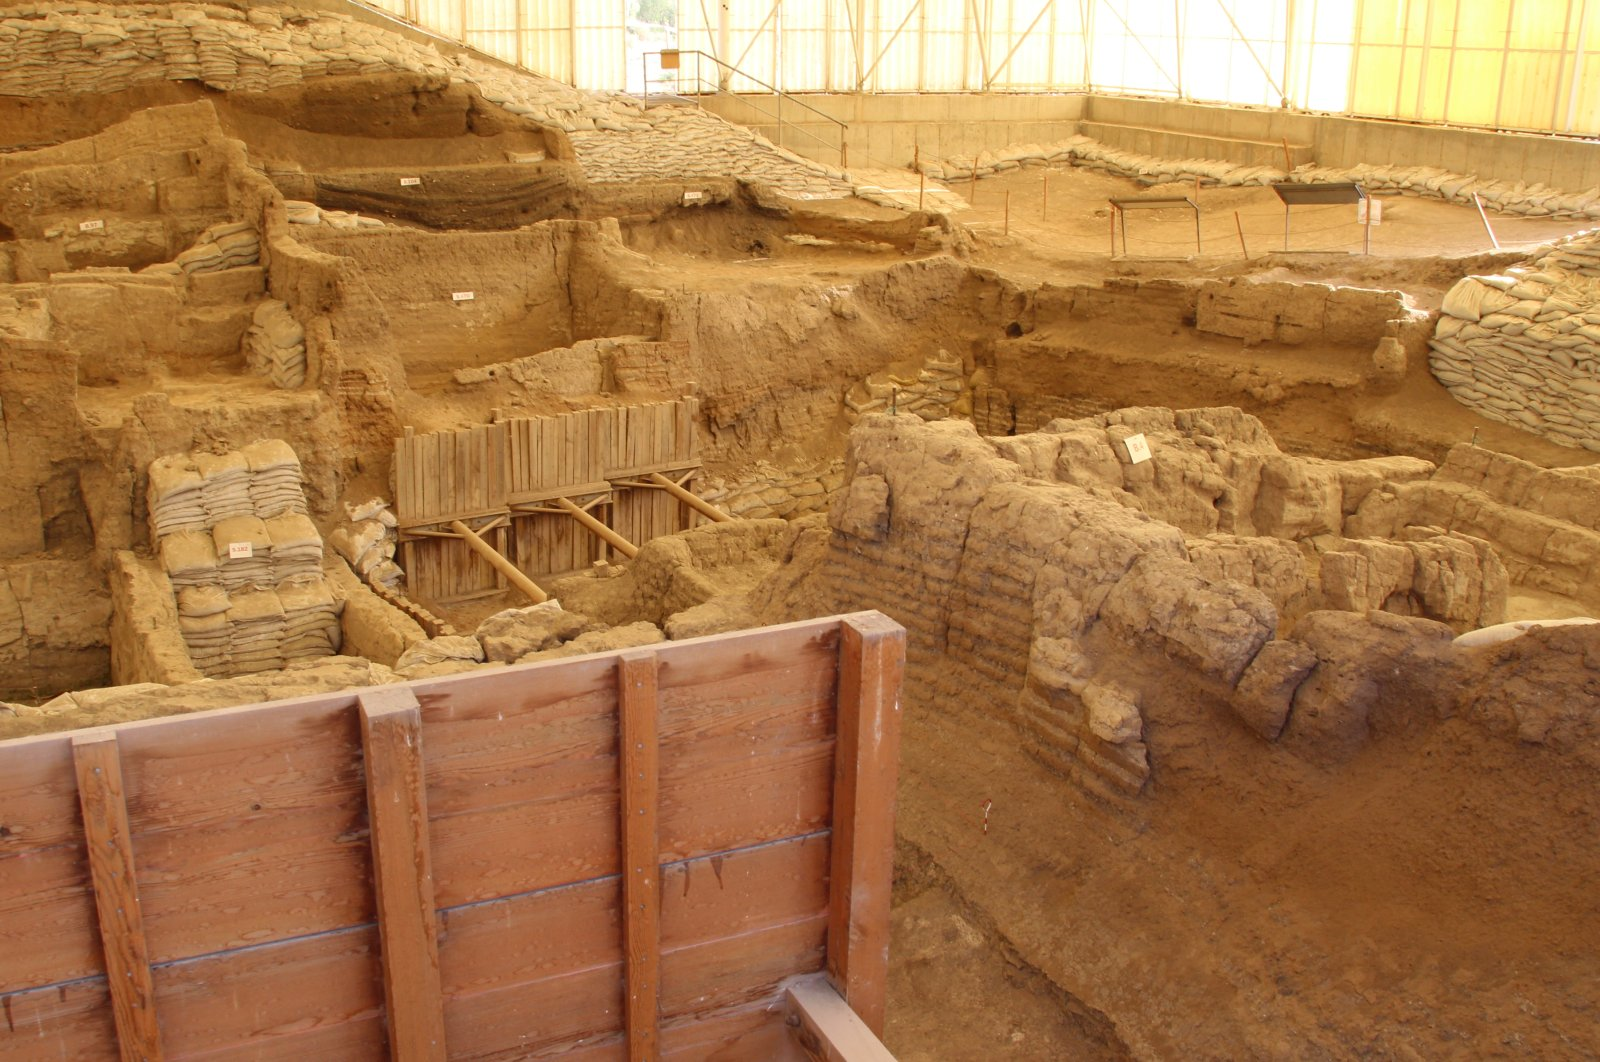 A view from the newly excavated area in Çatalhöyük, Konya, central Turkey. (AA Photo)